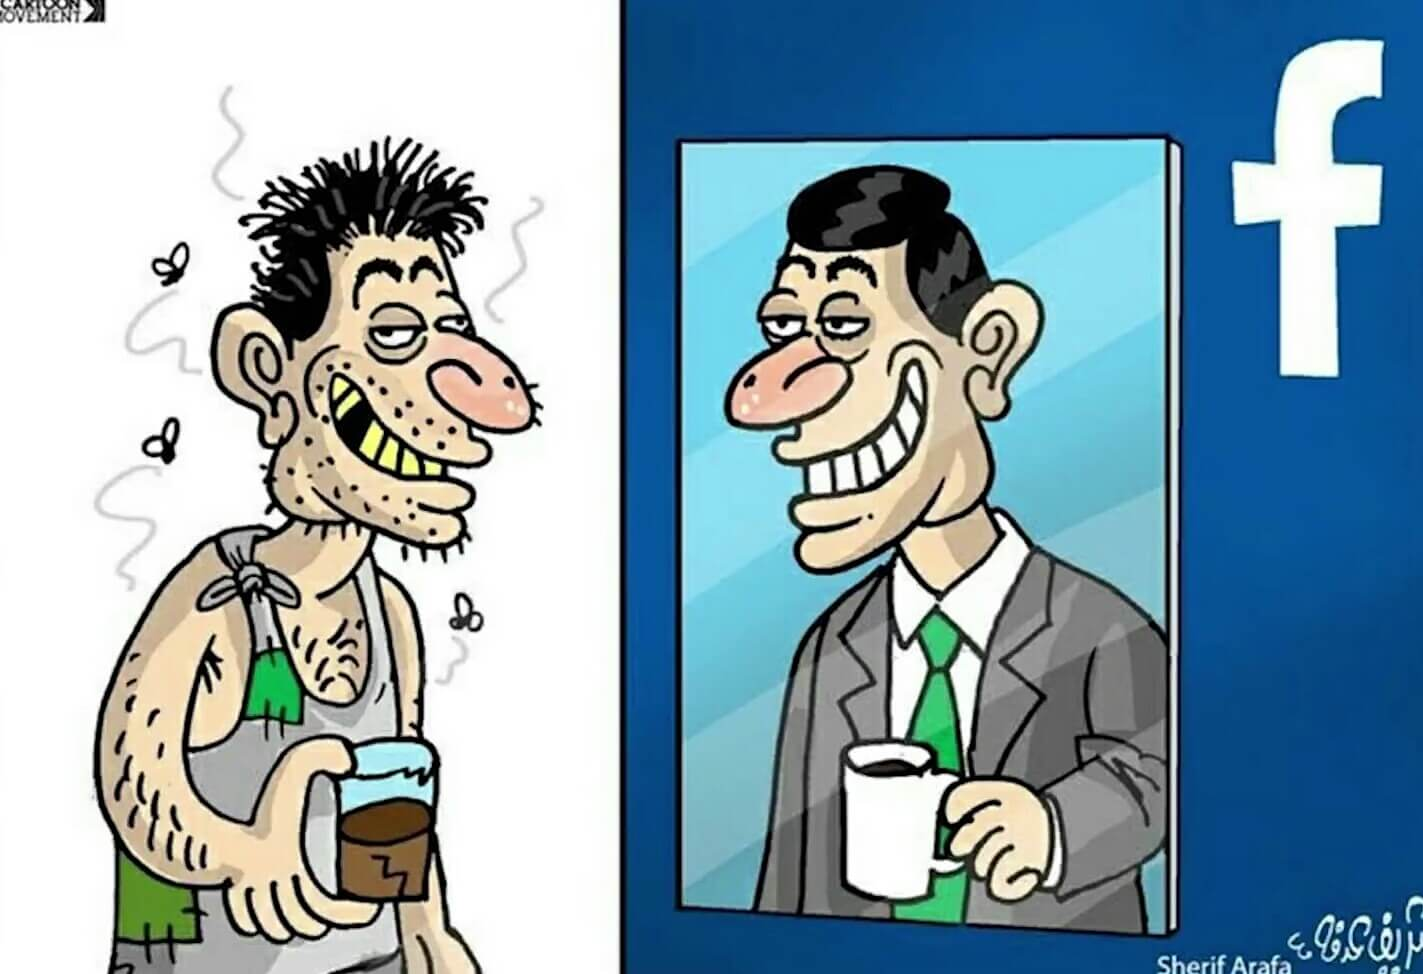 64 Truly Funny Illustrations Show Both Sides Of Society